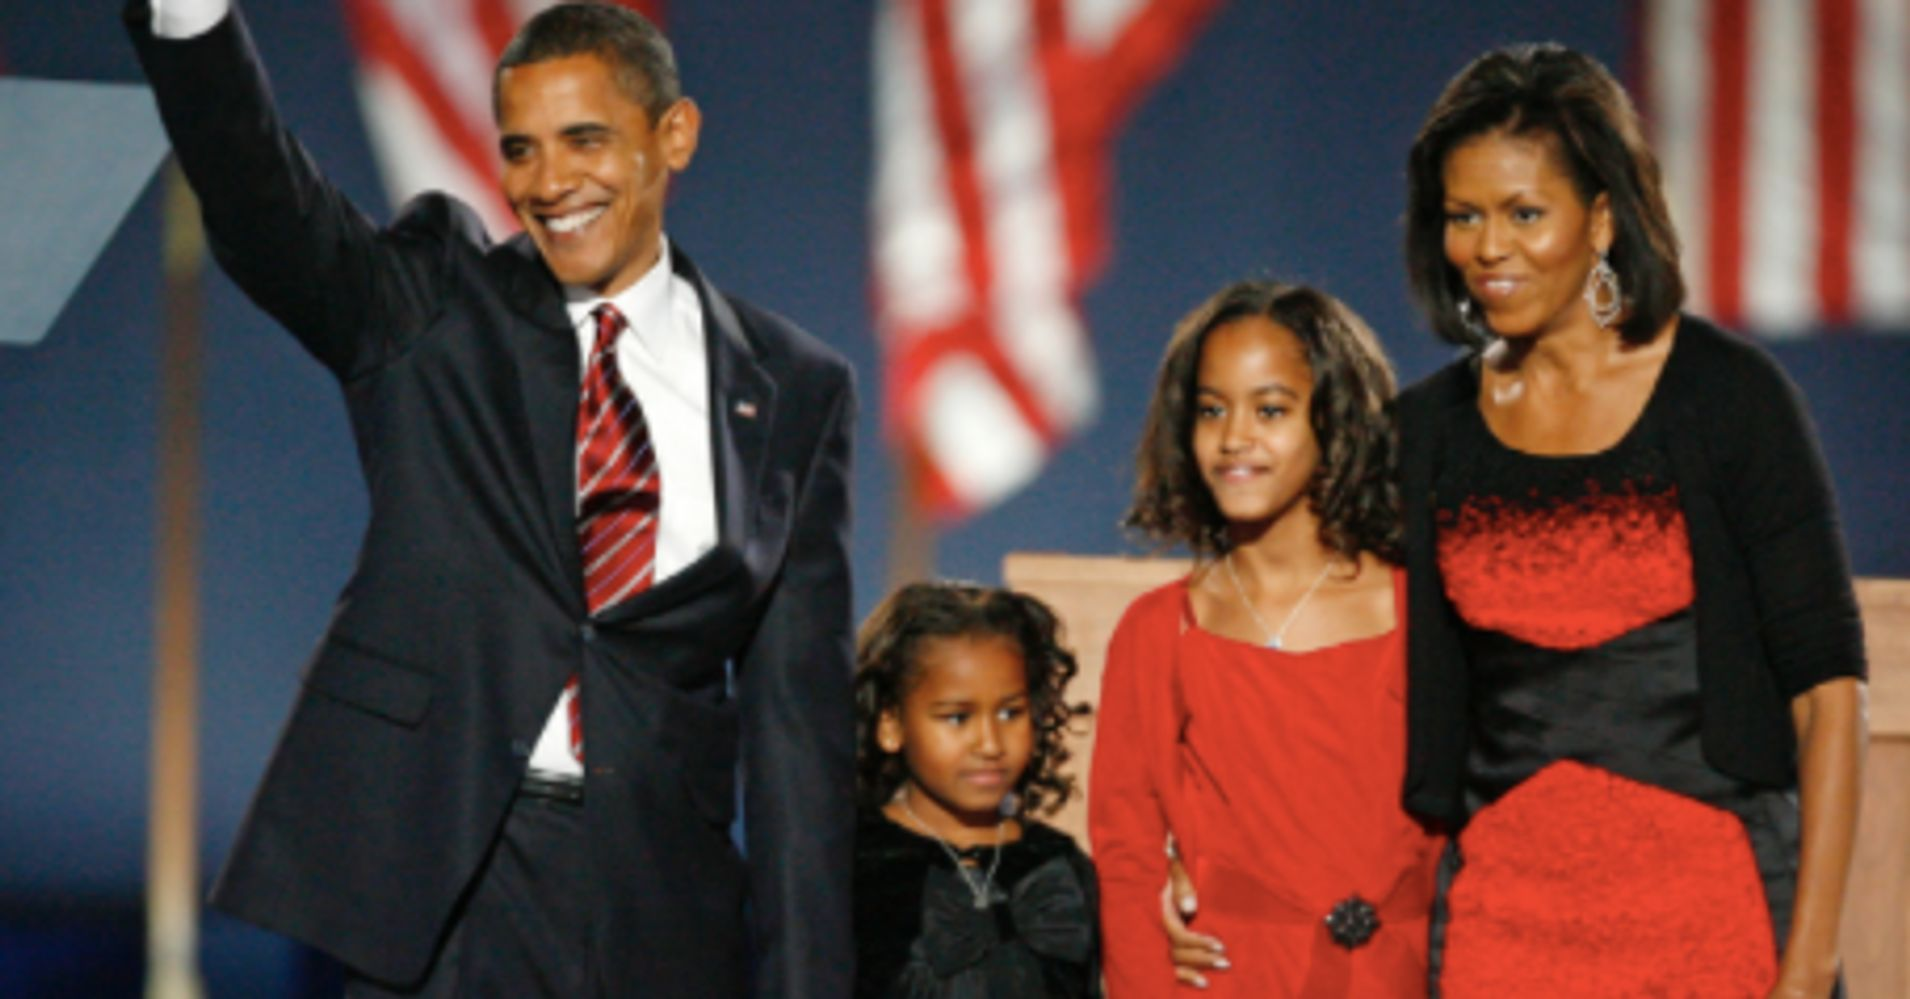 Barack Obama Just Posted The Sweetest Father's Day Throwback Photo